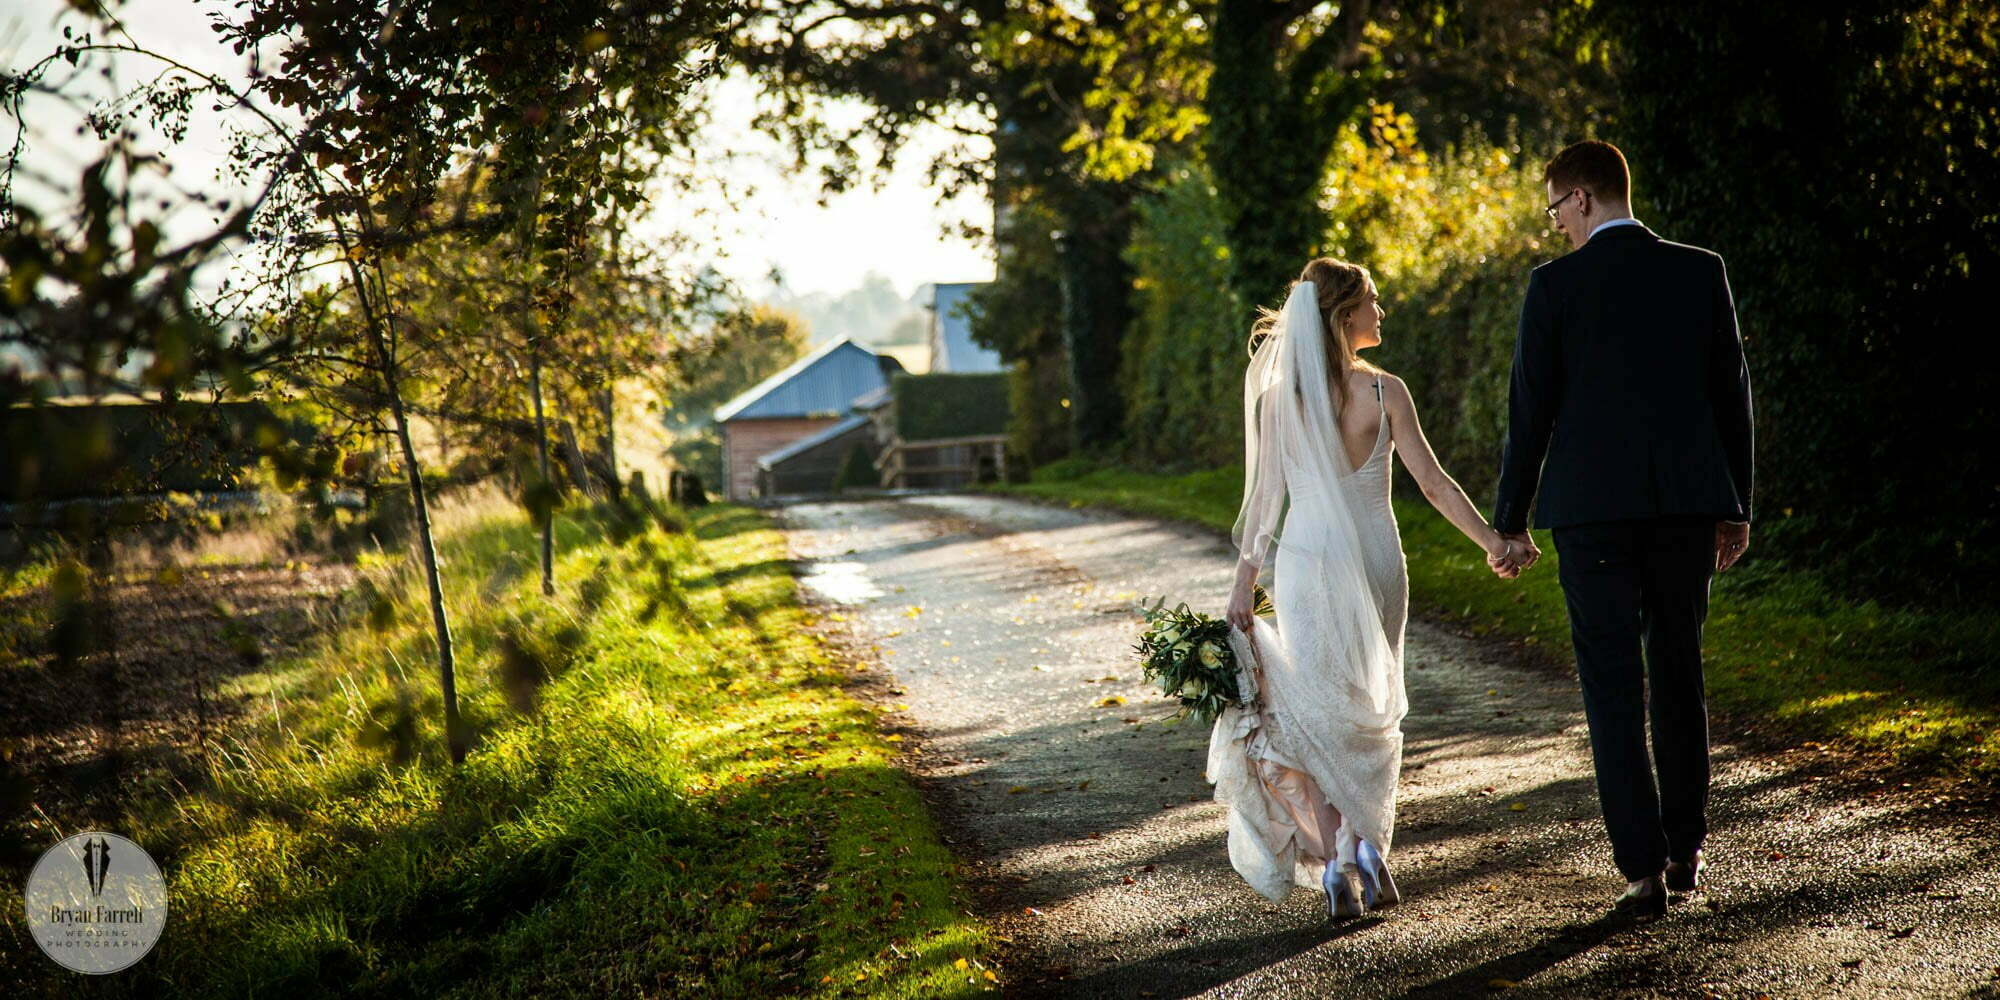 Autumn wedding at Cripps Barn.